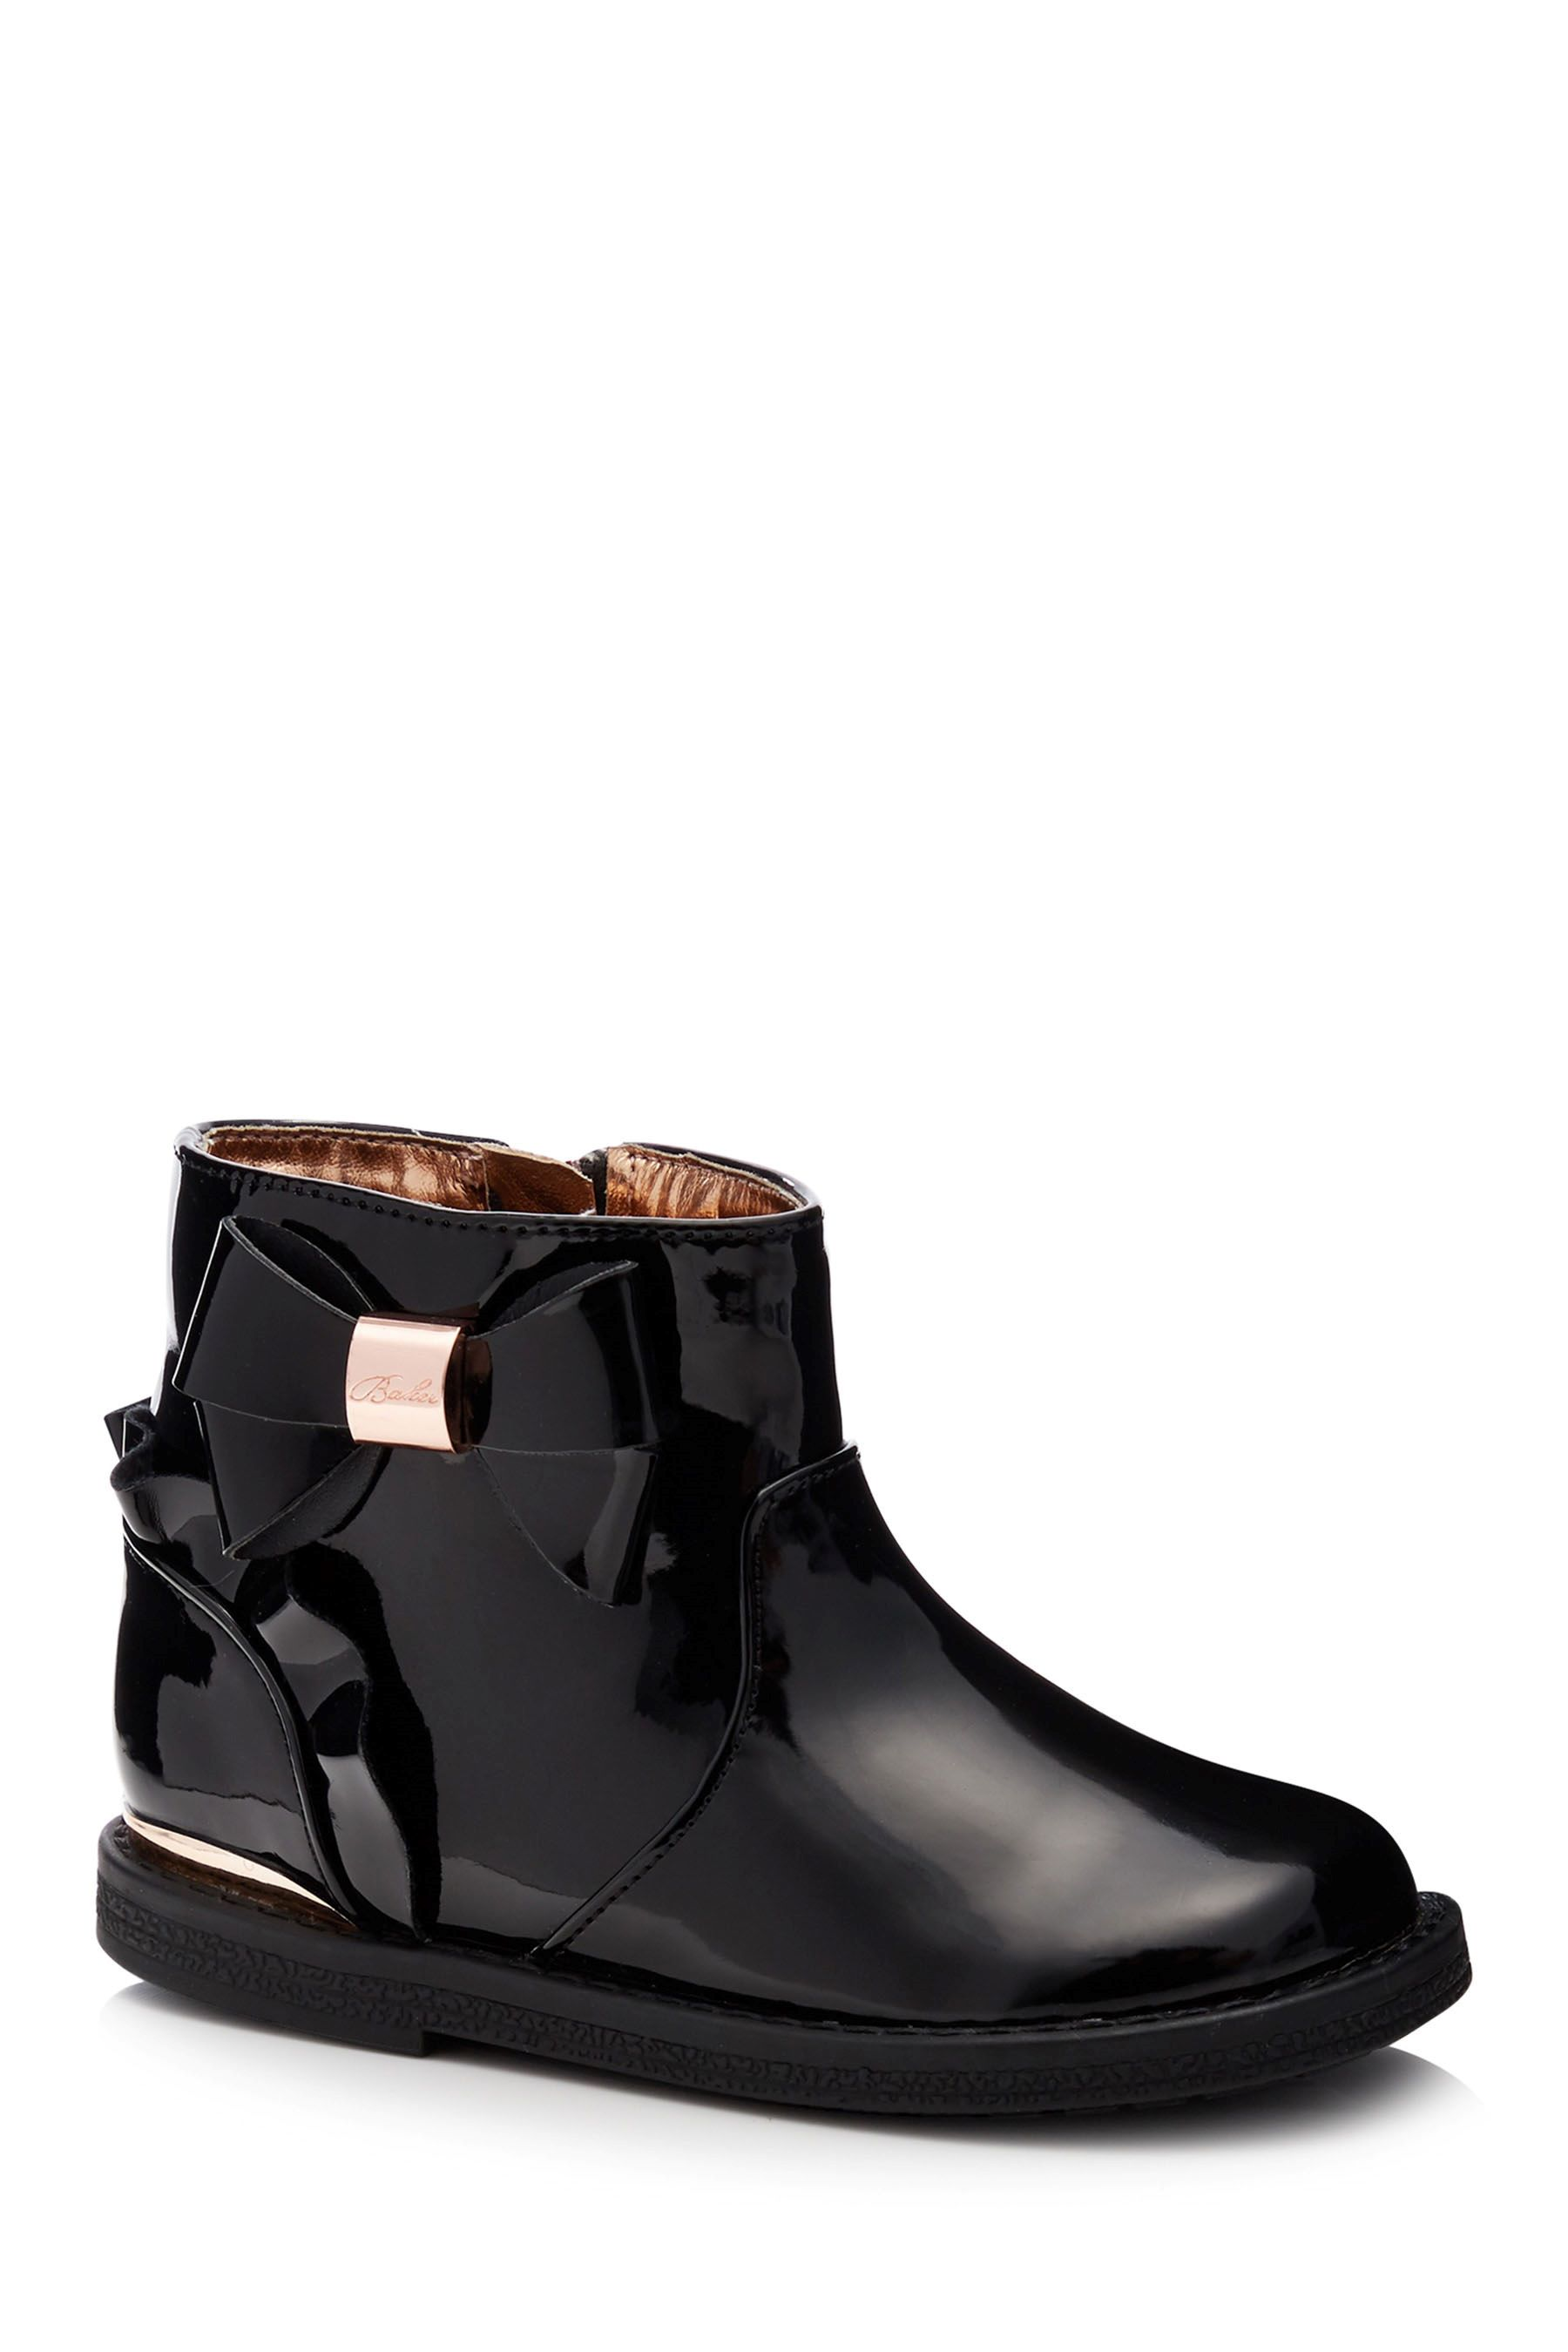 fbd724978cf Girls Baker by Ted Baker Patent Bktg Frill Boot - Black | Products ...